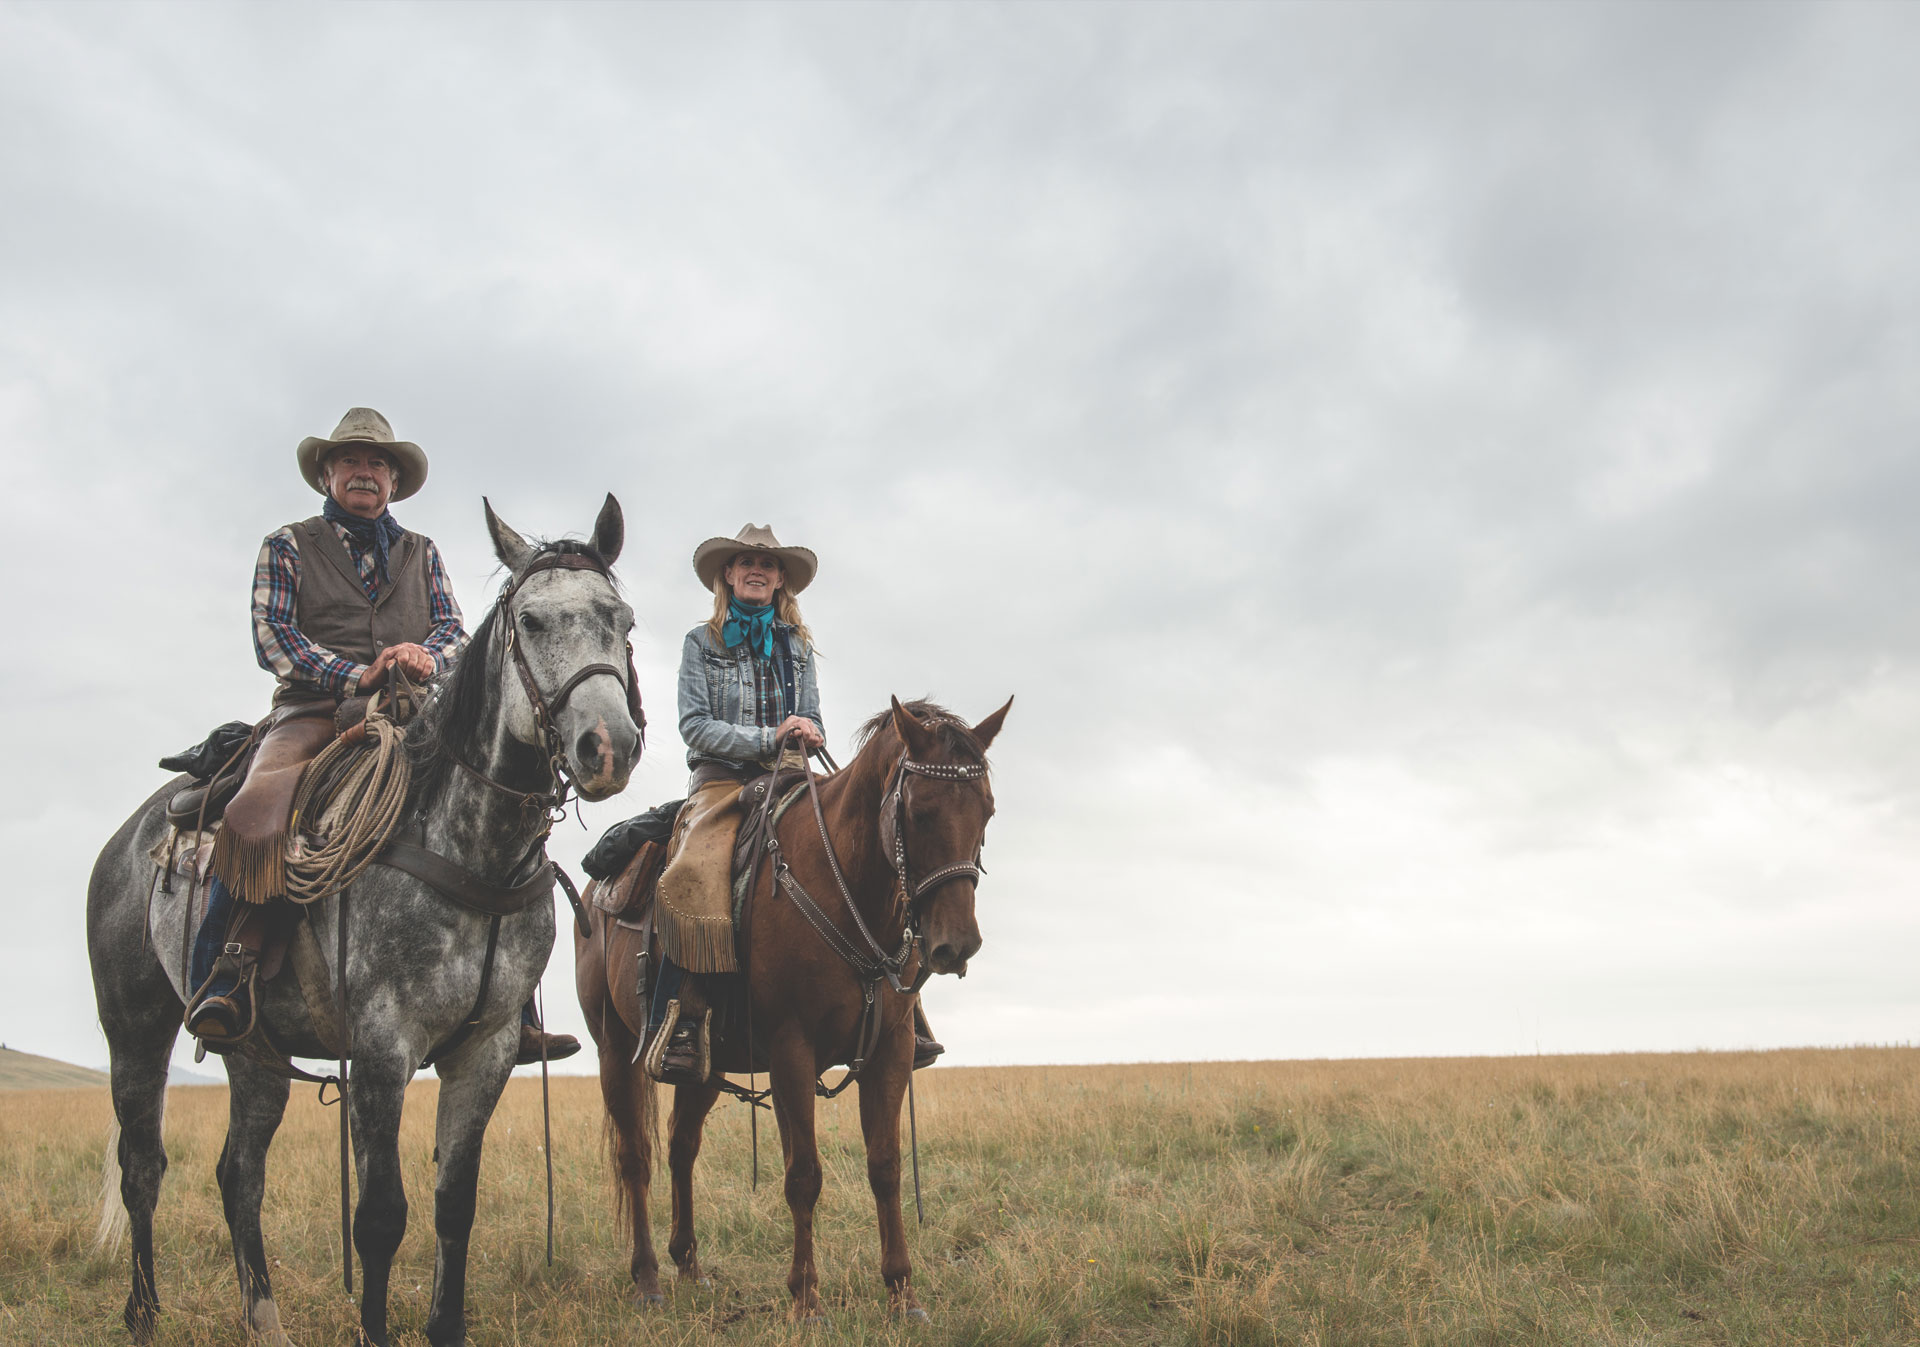 Explore beyond Calgary at Bar U Ranch National Historic Site (Photo credit: Jeff Bartlett).